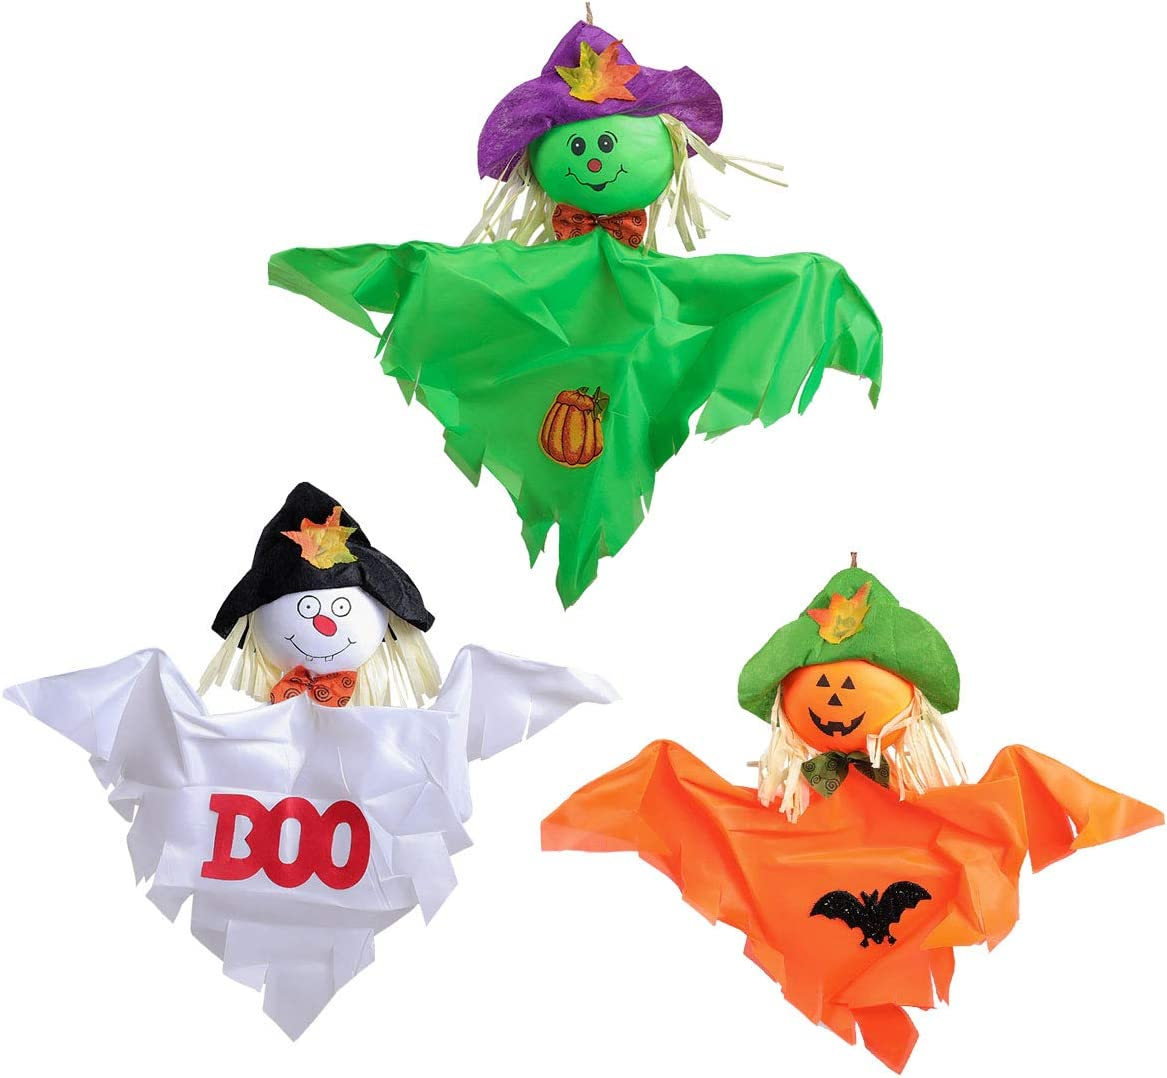 3 PCS Halloween Hanging Ghost for Indoor Outdoor Outside Front Yard Tree Patio Decoration, Scarecrow Design Halloween Funny Cute Decor Ornaments, Orange + Green + White